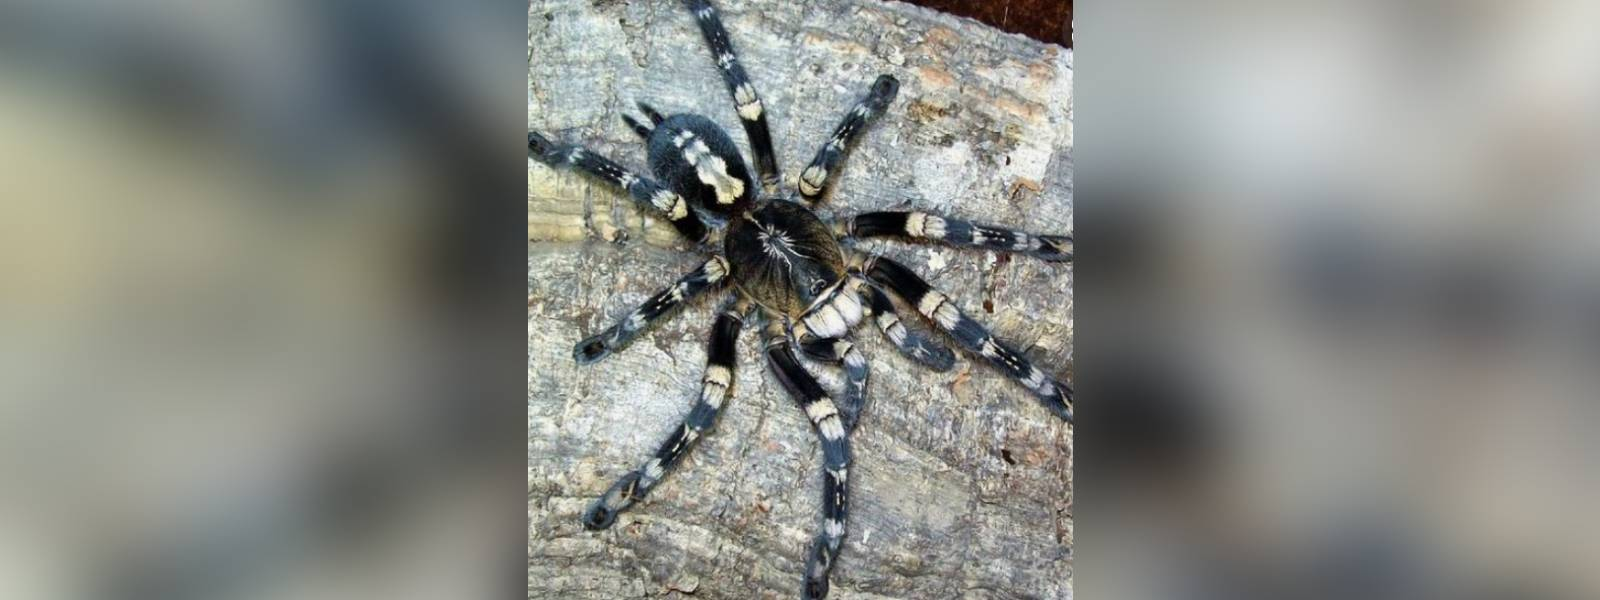 Sri Lankan researchers believe they have discovered endemic spider